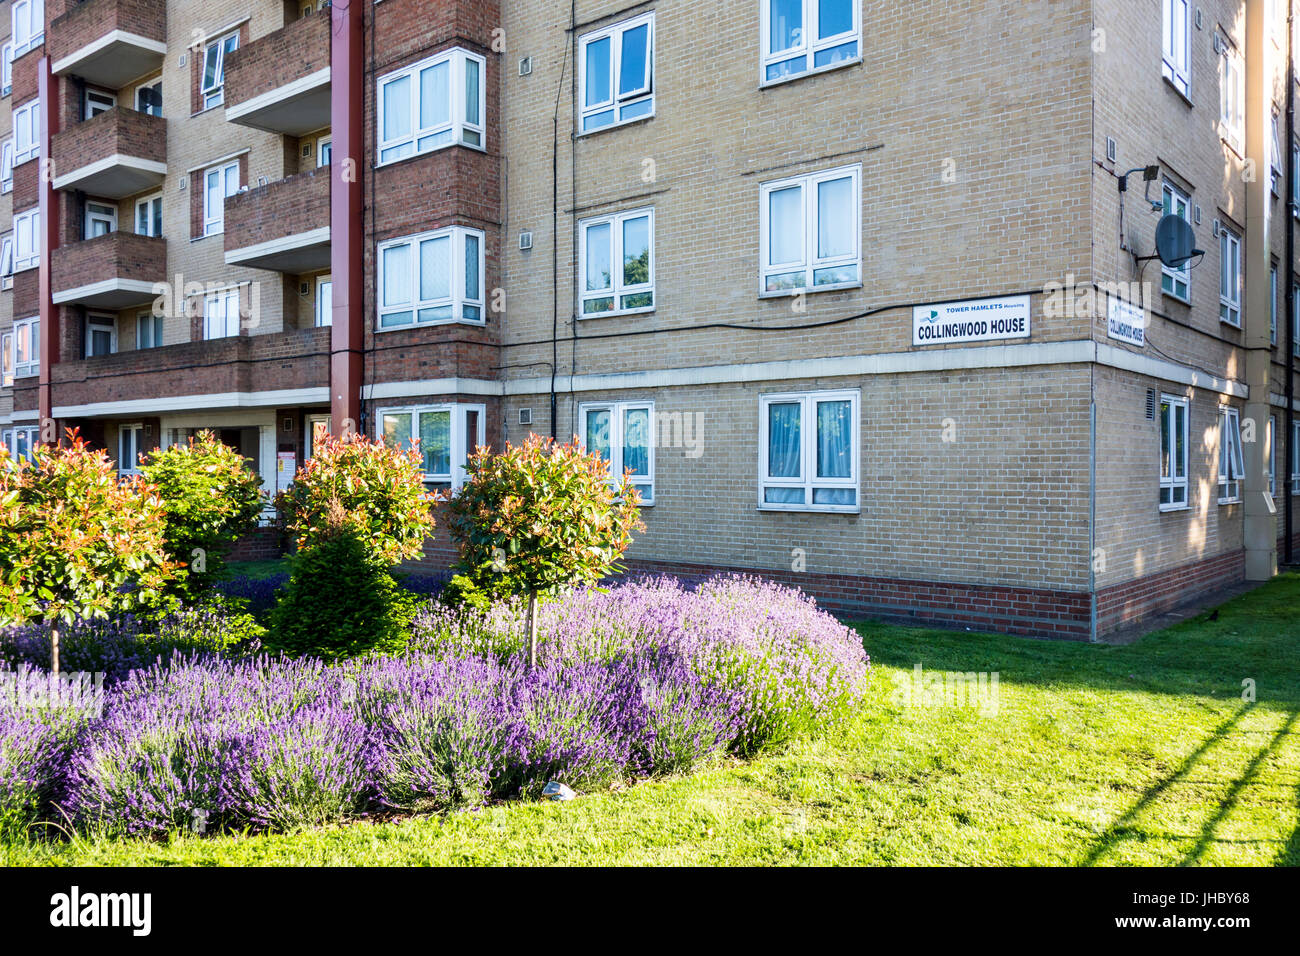 Collingwood House, Darling Row, Bethnal Green, Tower Hamlets, East London, UK - Stock Image